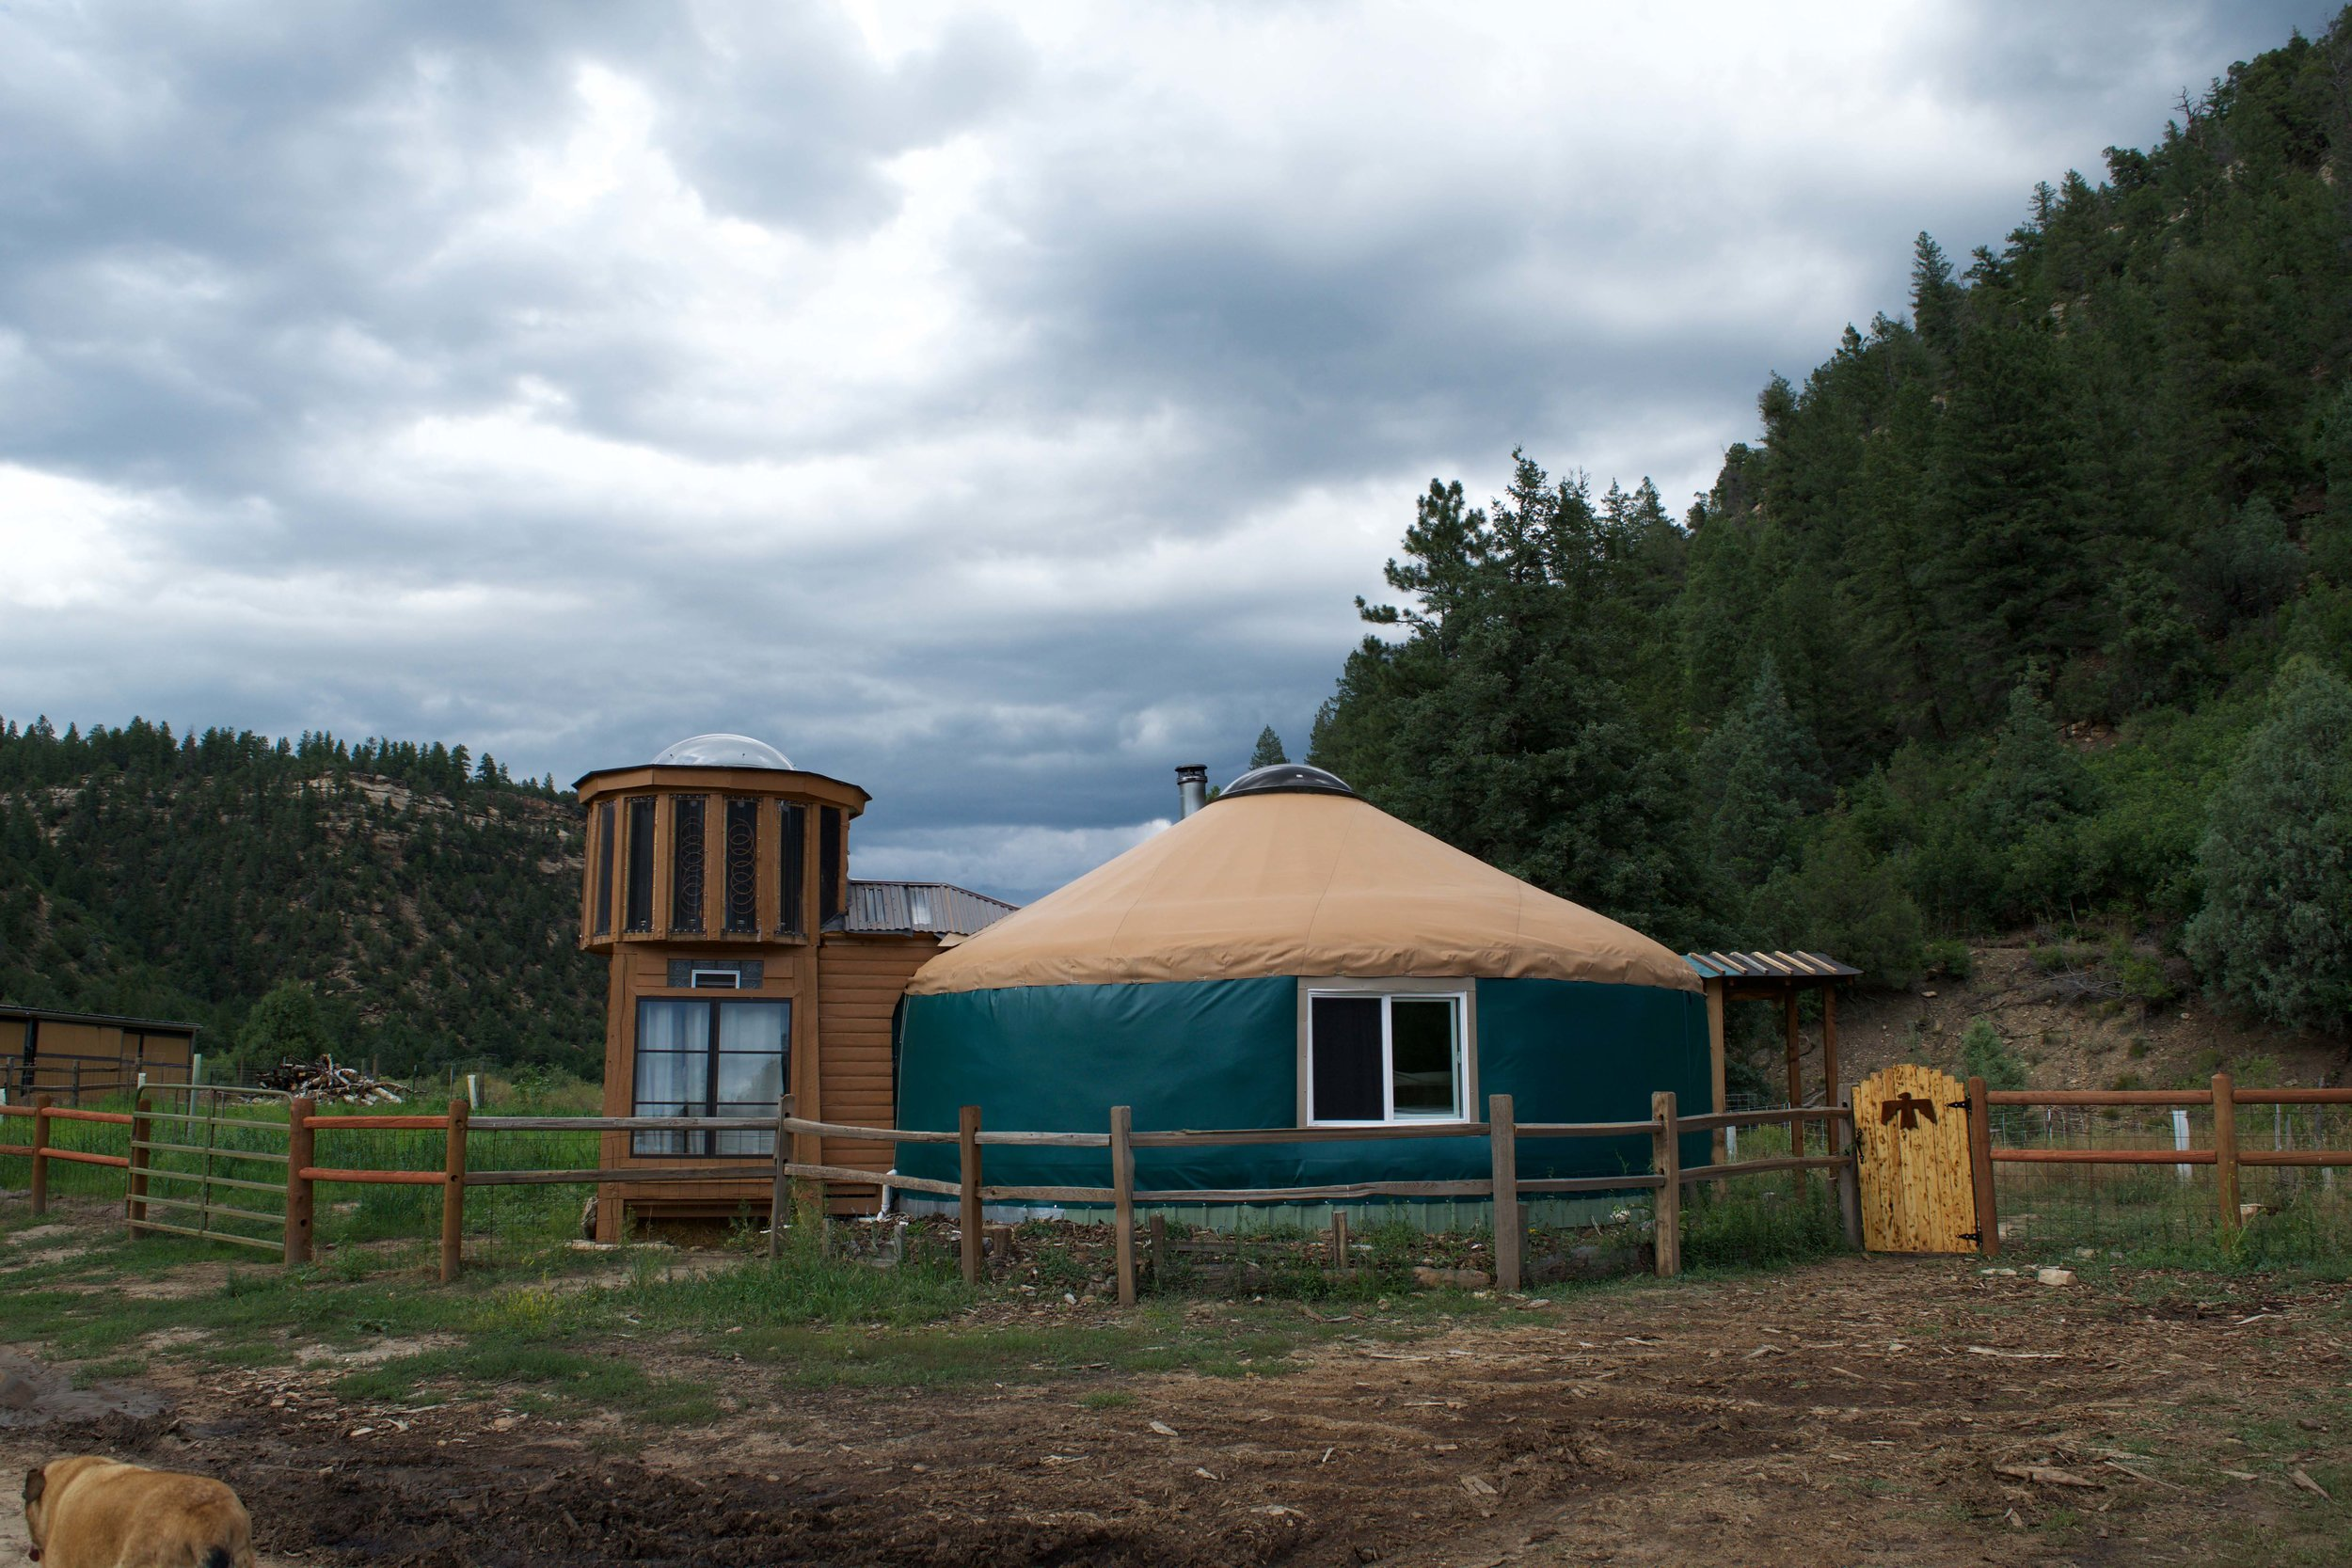 Stay in a yurt near Mancos